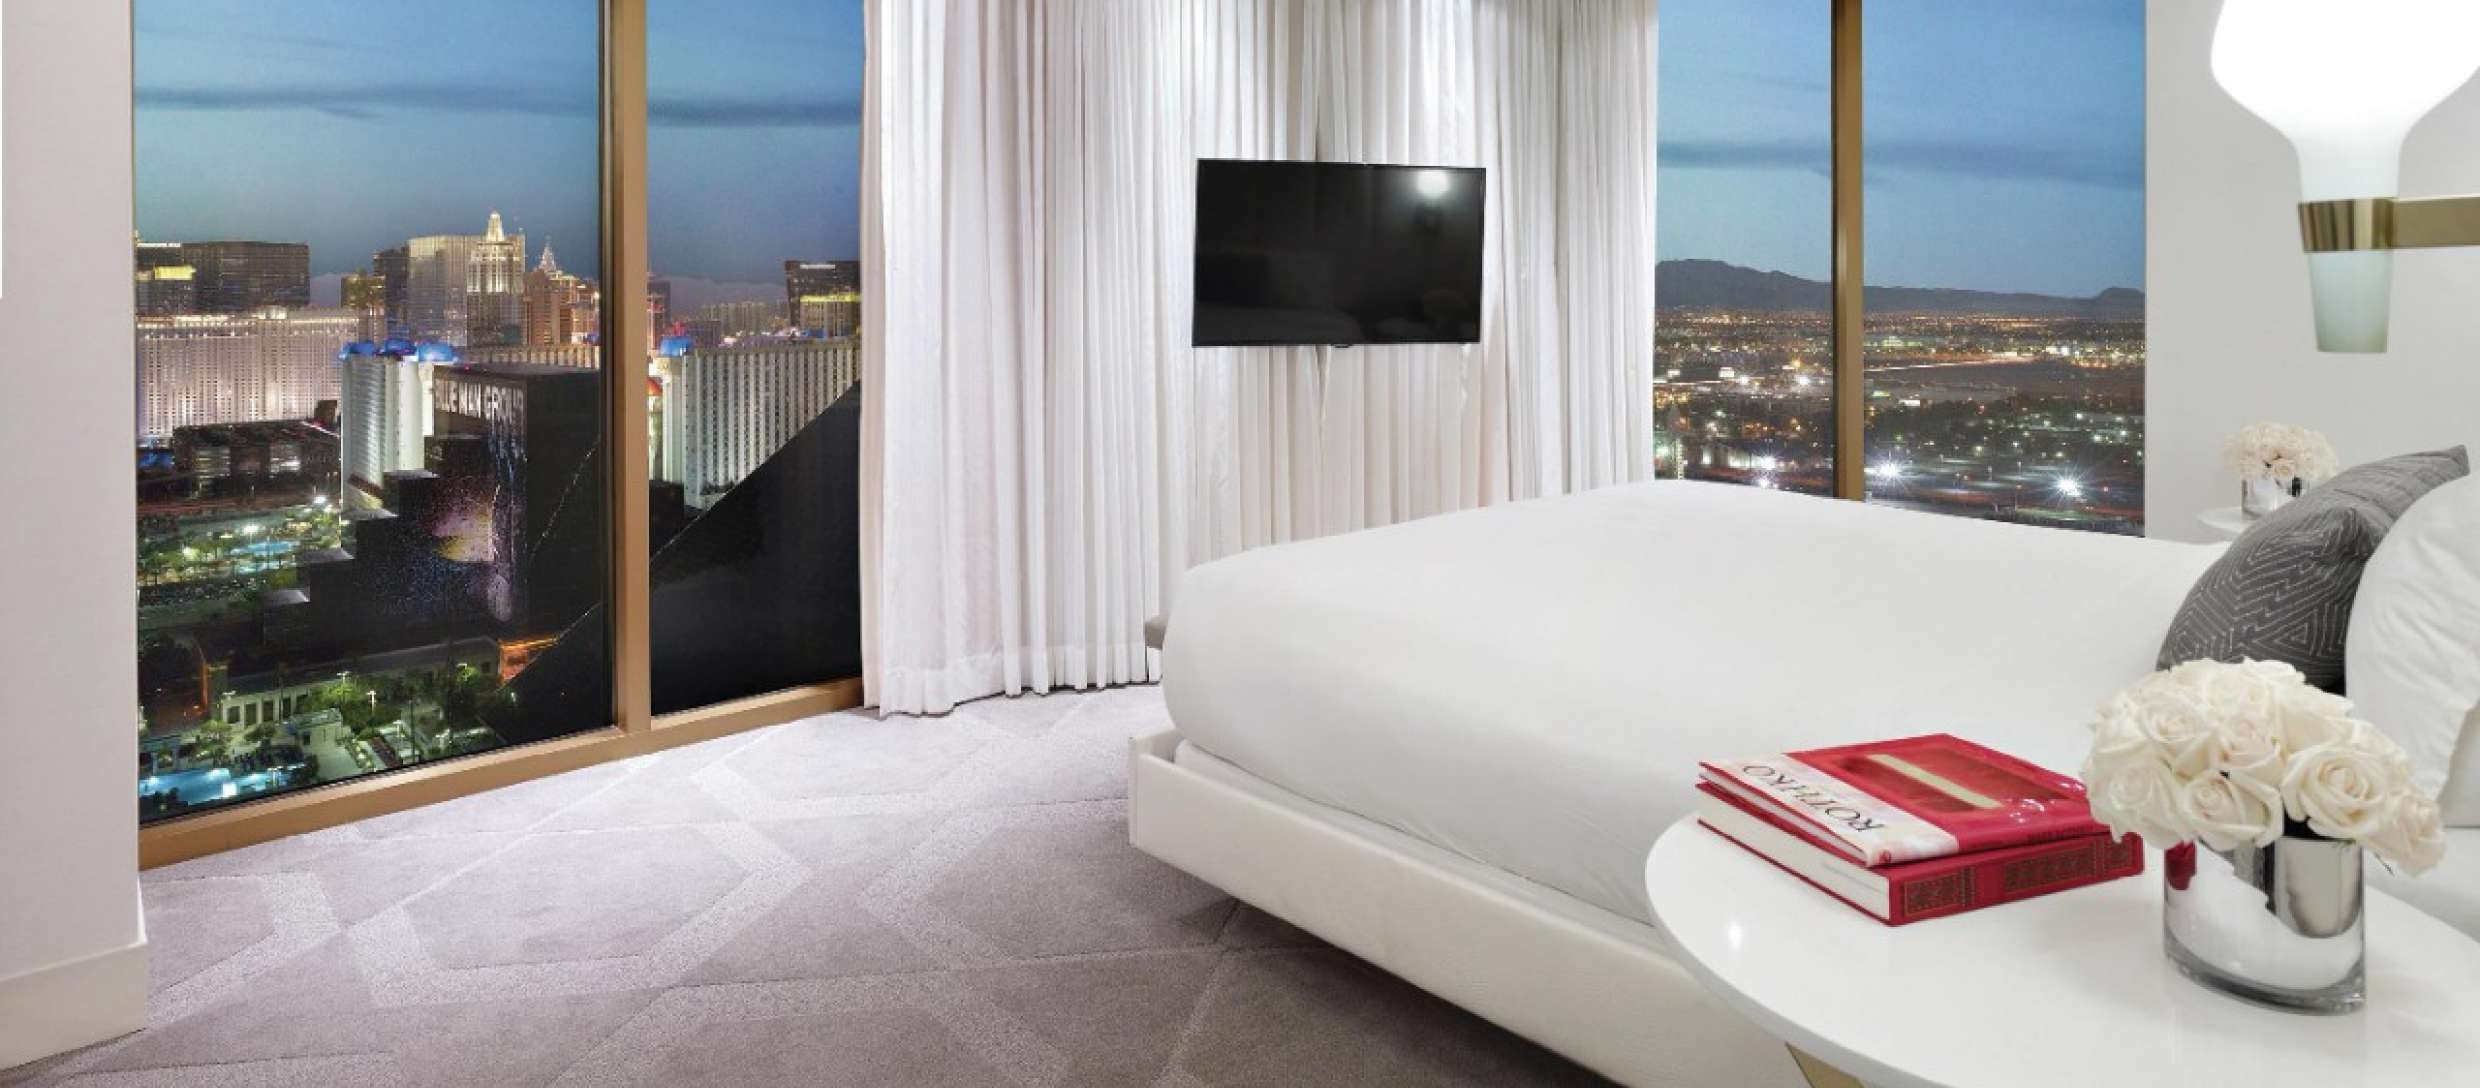 Smoke-Free Vegas: Our Favorite Non-Smoking Hotels in Las Vegas